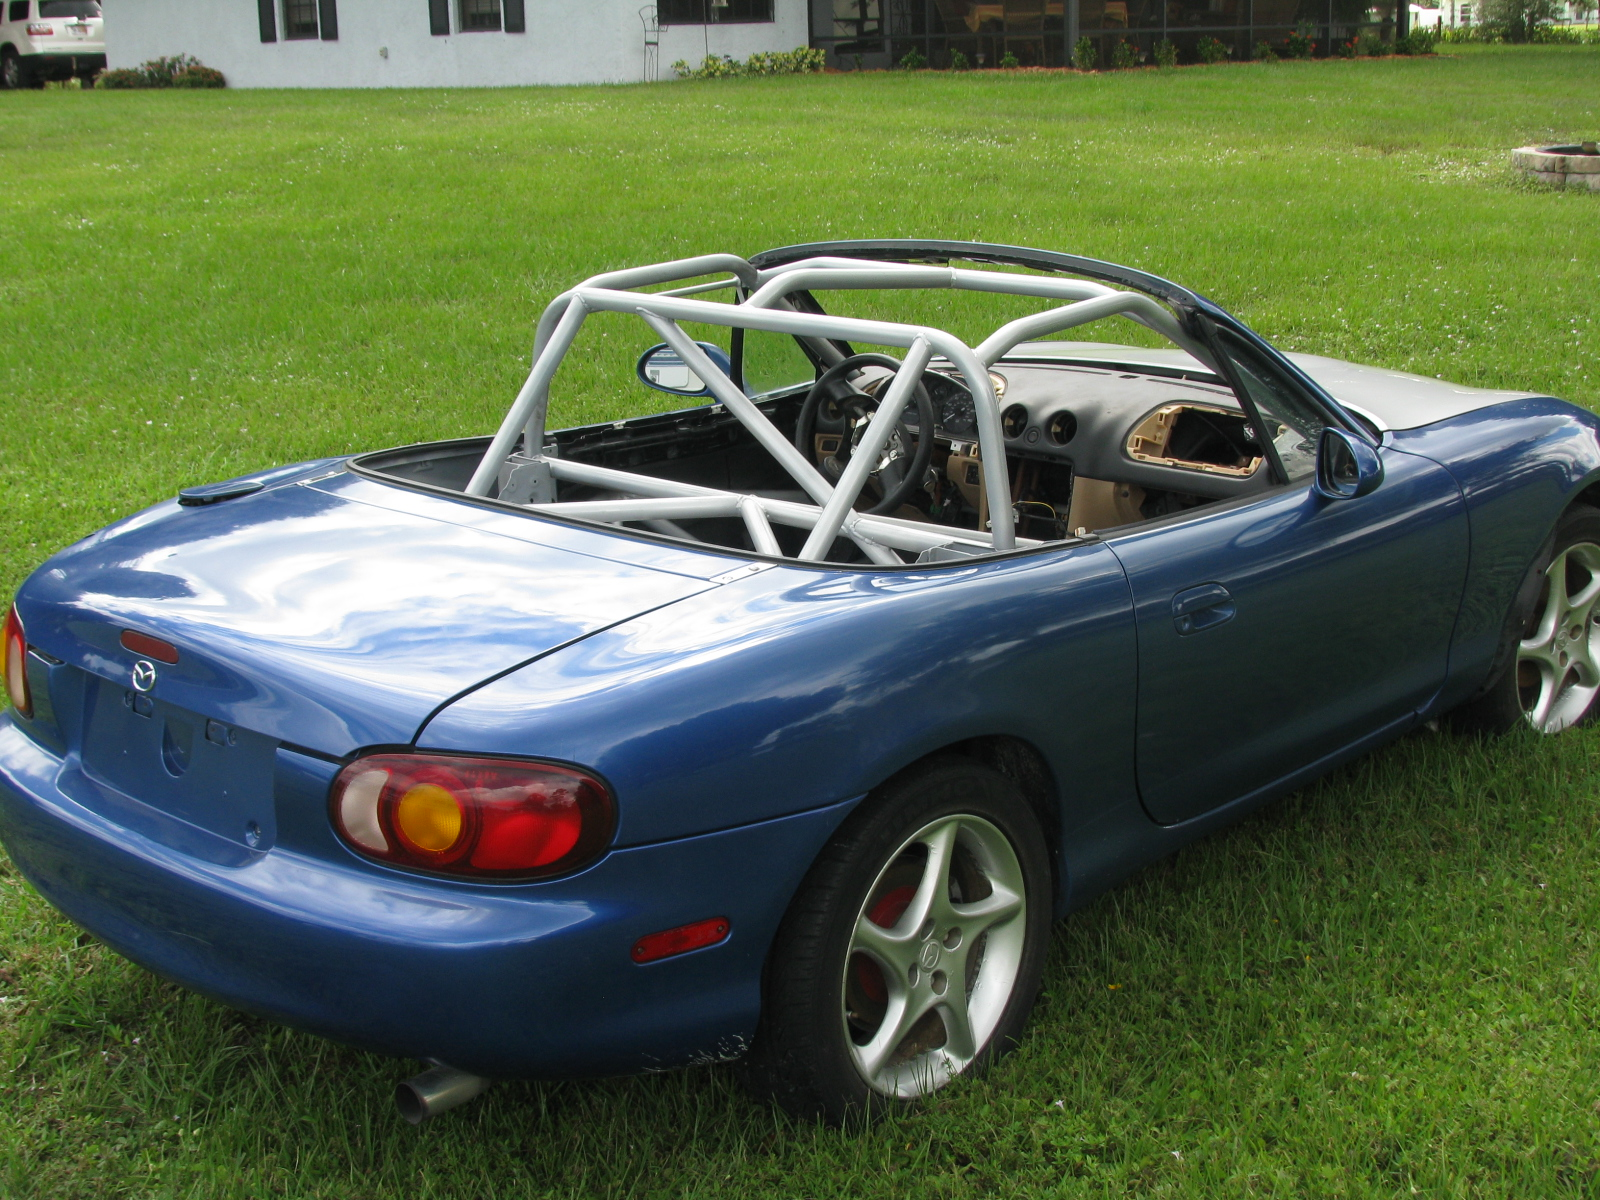 Now available from Treasure Coast Miata,Track Day or Spec